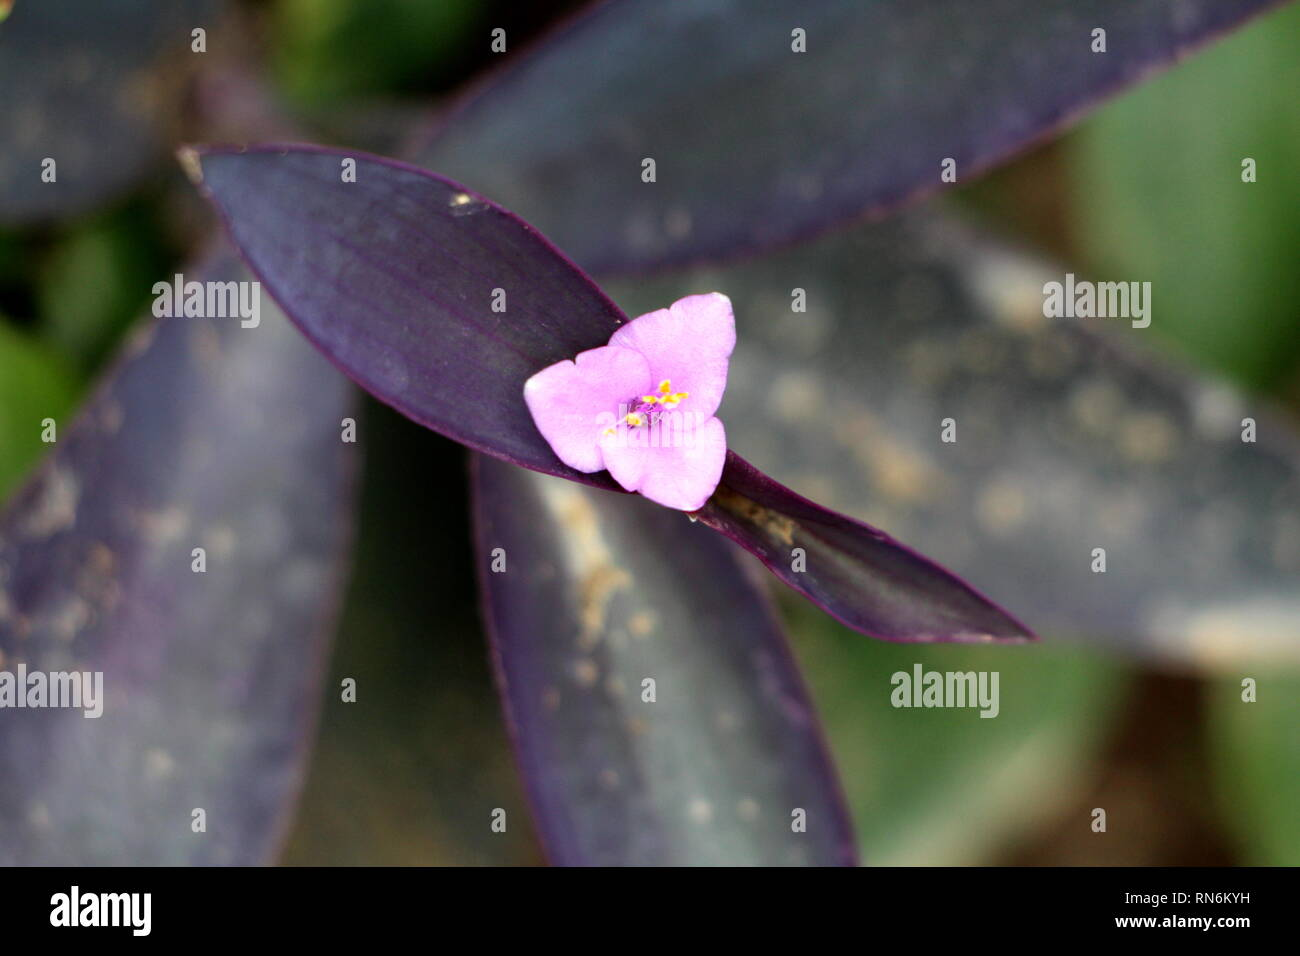 Purple heart or Tradescantia pallida or Wandering jew or Walking jew or Purple secretia or Purple queen evergreen perennial plant - Stock Image